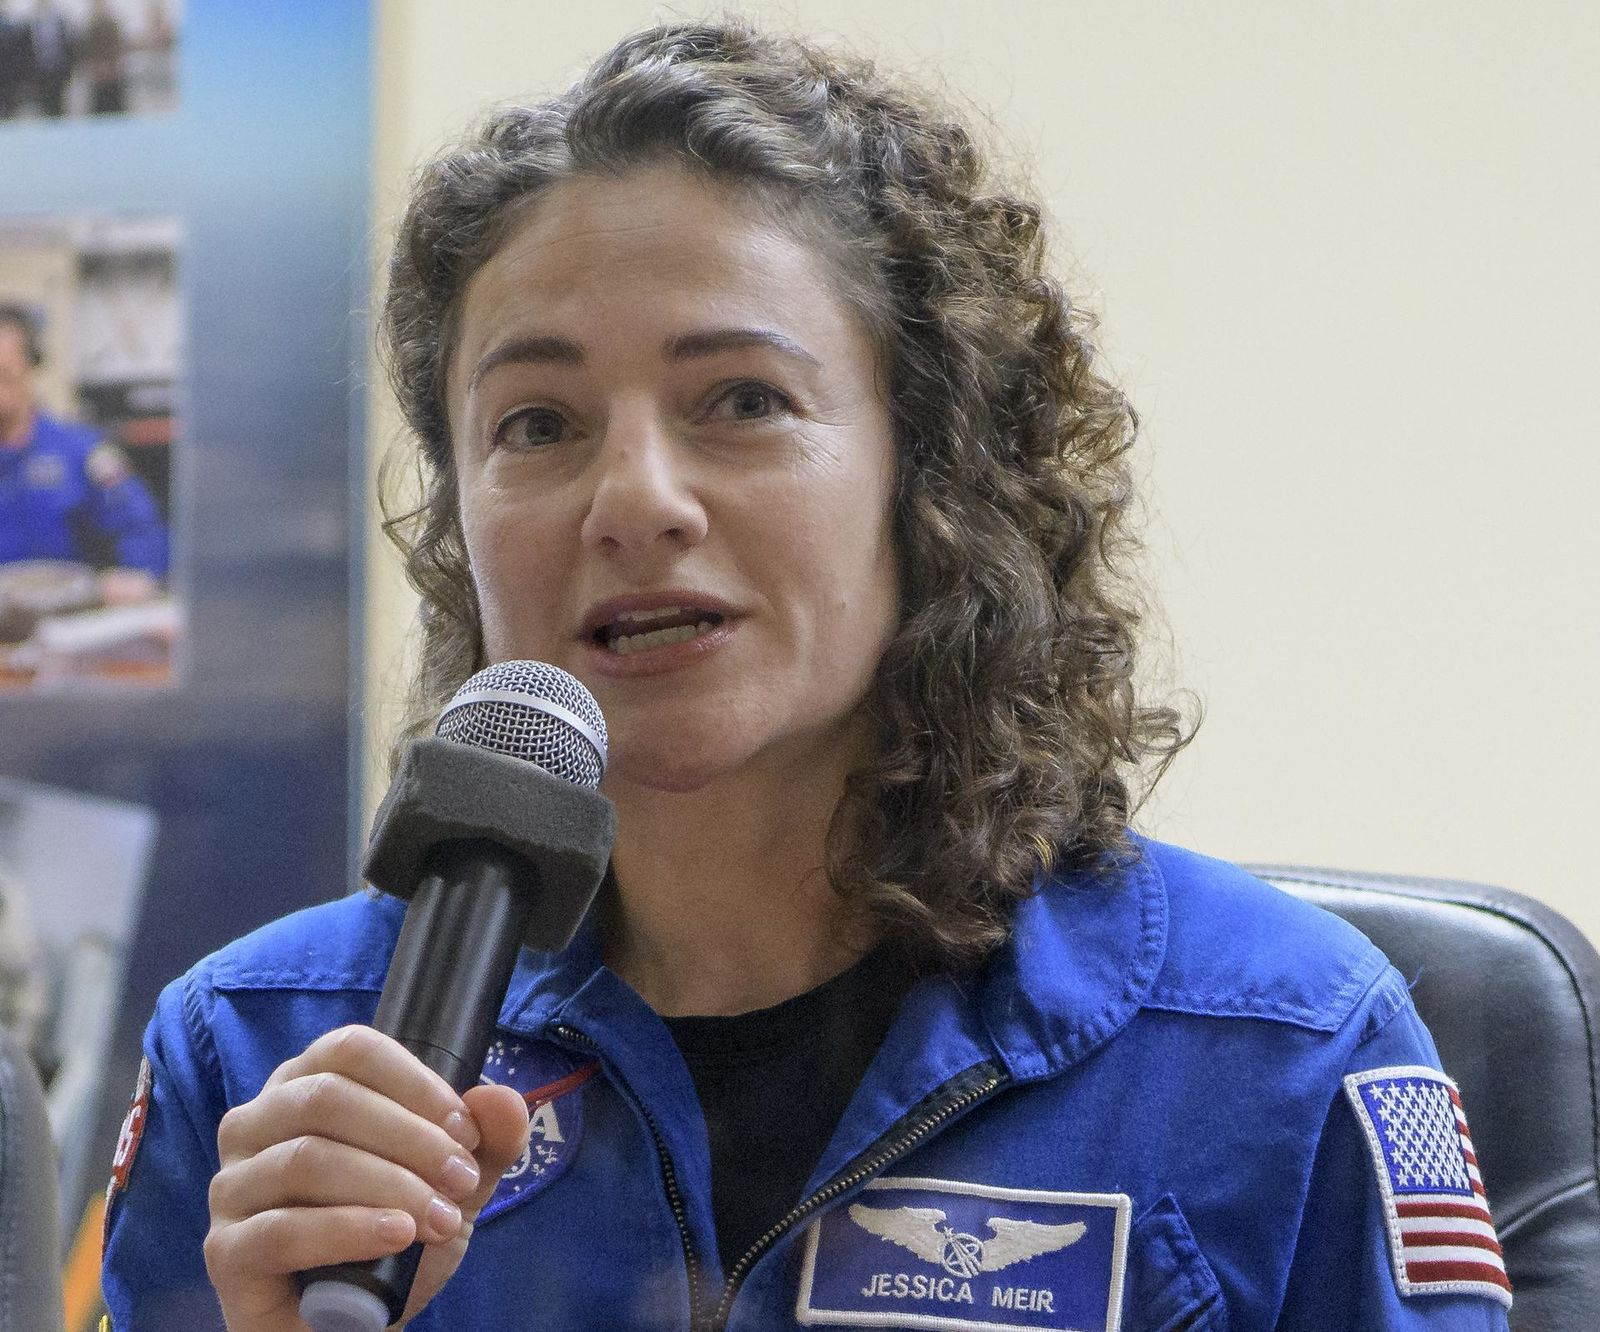 Expedition 61 astronaut Jessica Meir of NASA is seen during a press conference, Tuesday, Sept. 24, 2019 at the Cosmonaut Hotel in Baikonur, Kazakhstan. Meir, Expedition 61 cosmonaut Oleg Skripochka of Roscosmos and spaceflight participant Hazzaa Ali Almansoori of the United Arab Emirates will launch September 25th on the Soyuz MS-15 spacecraft from the Baikonur Cosmodrome to the International Space Station. Photo Credit: (NASA/Bill Ingalls)